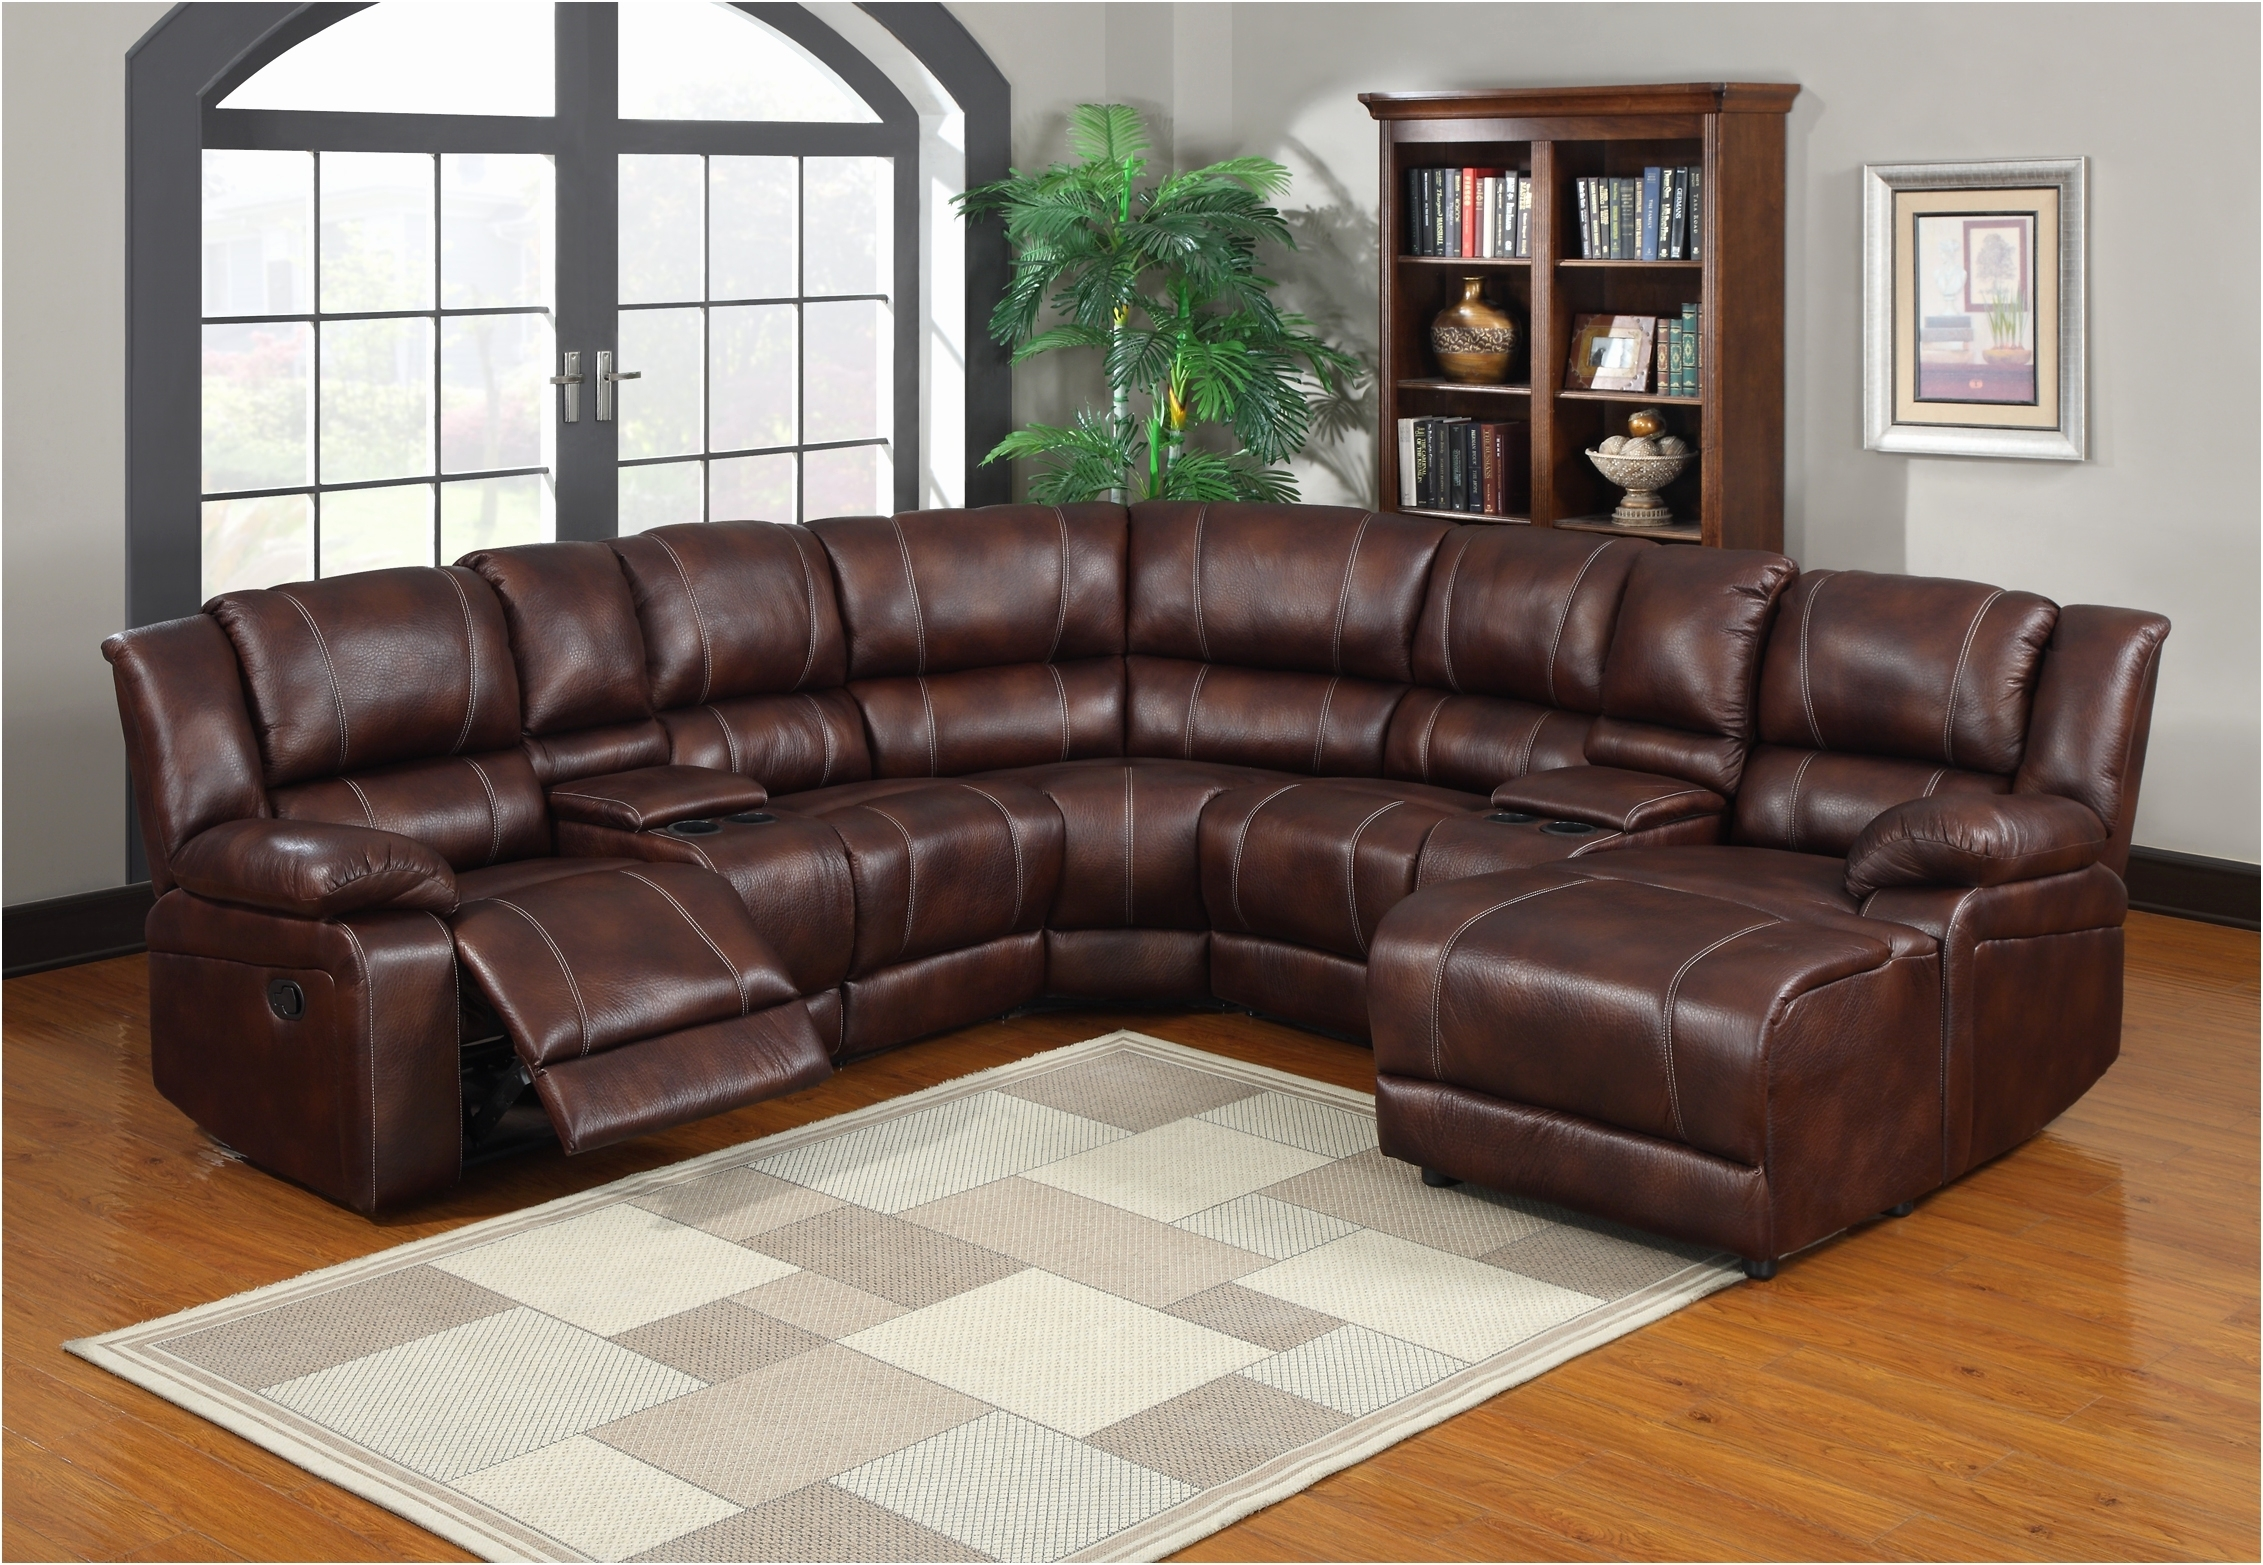 Inspirational Sectional Recliner Sofa With Cup Holders New Inside Sectional Sofas With Cup Holders (Image 2 of 10)